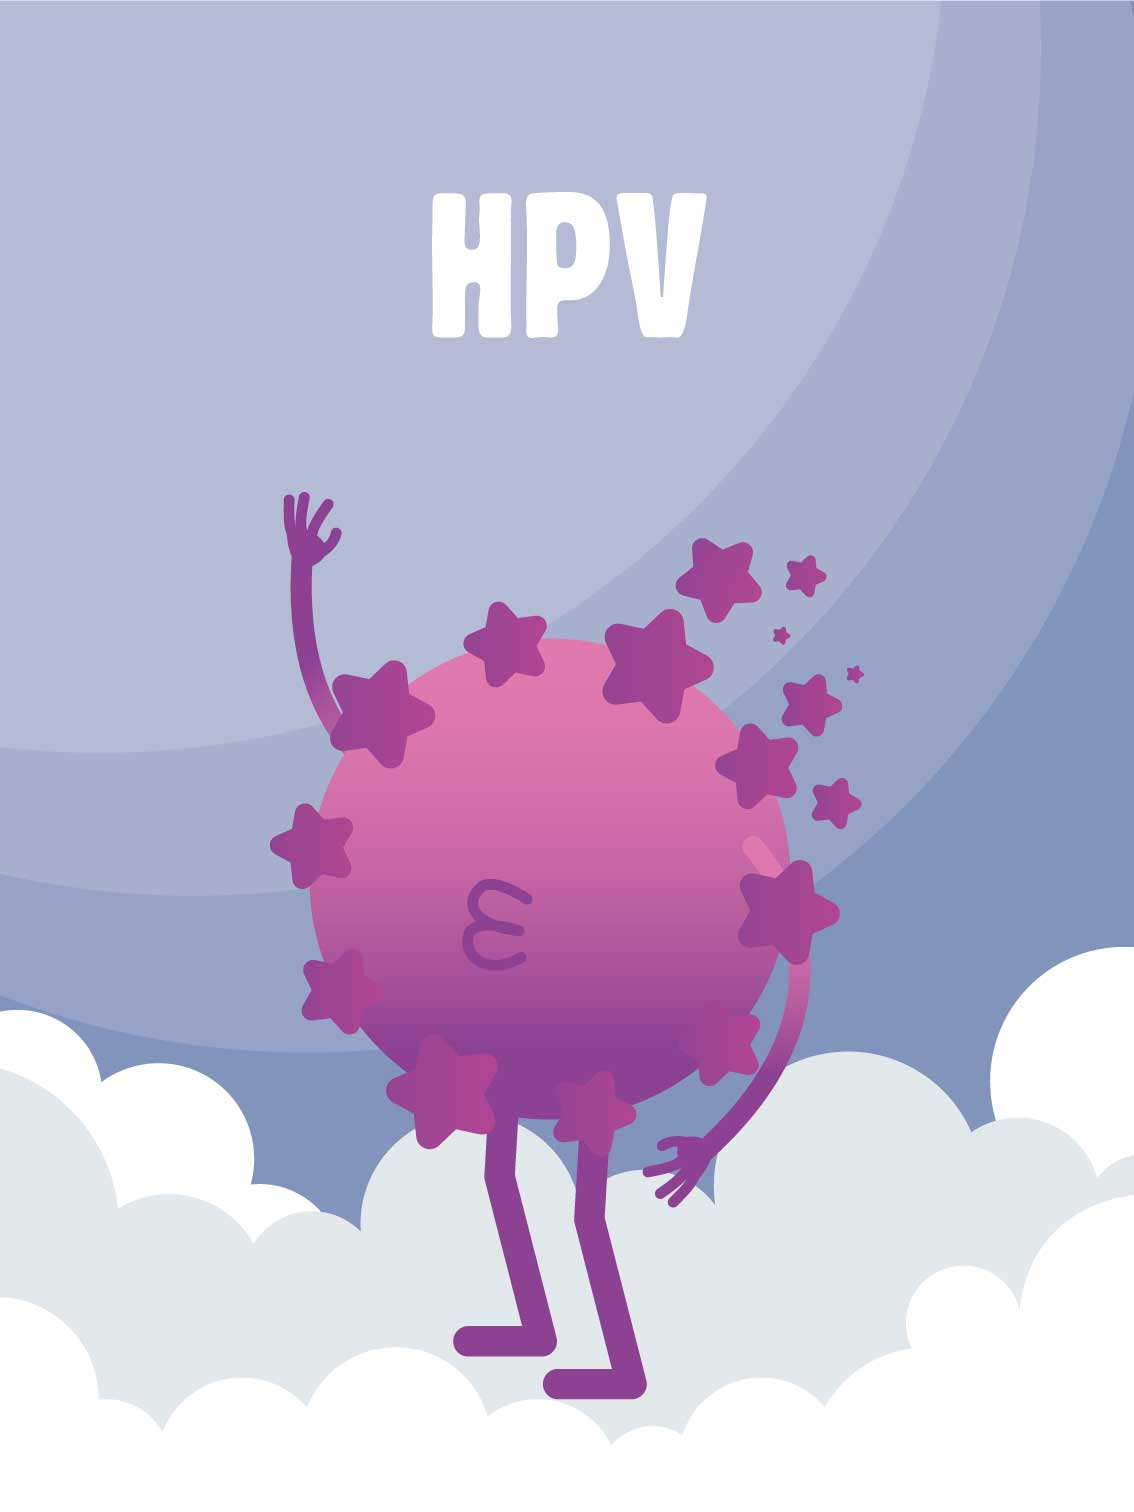 human papillomavirus in 2019 an update on cervical cancer prevention and screening guidelines intraductal papilloma chief complaint